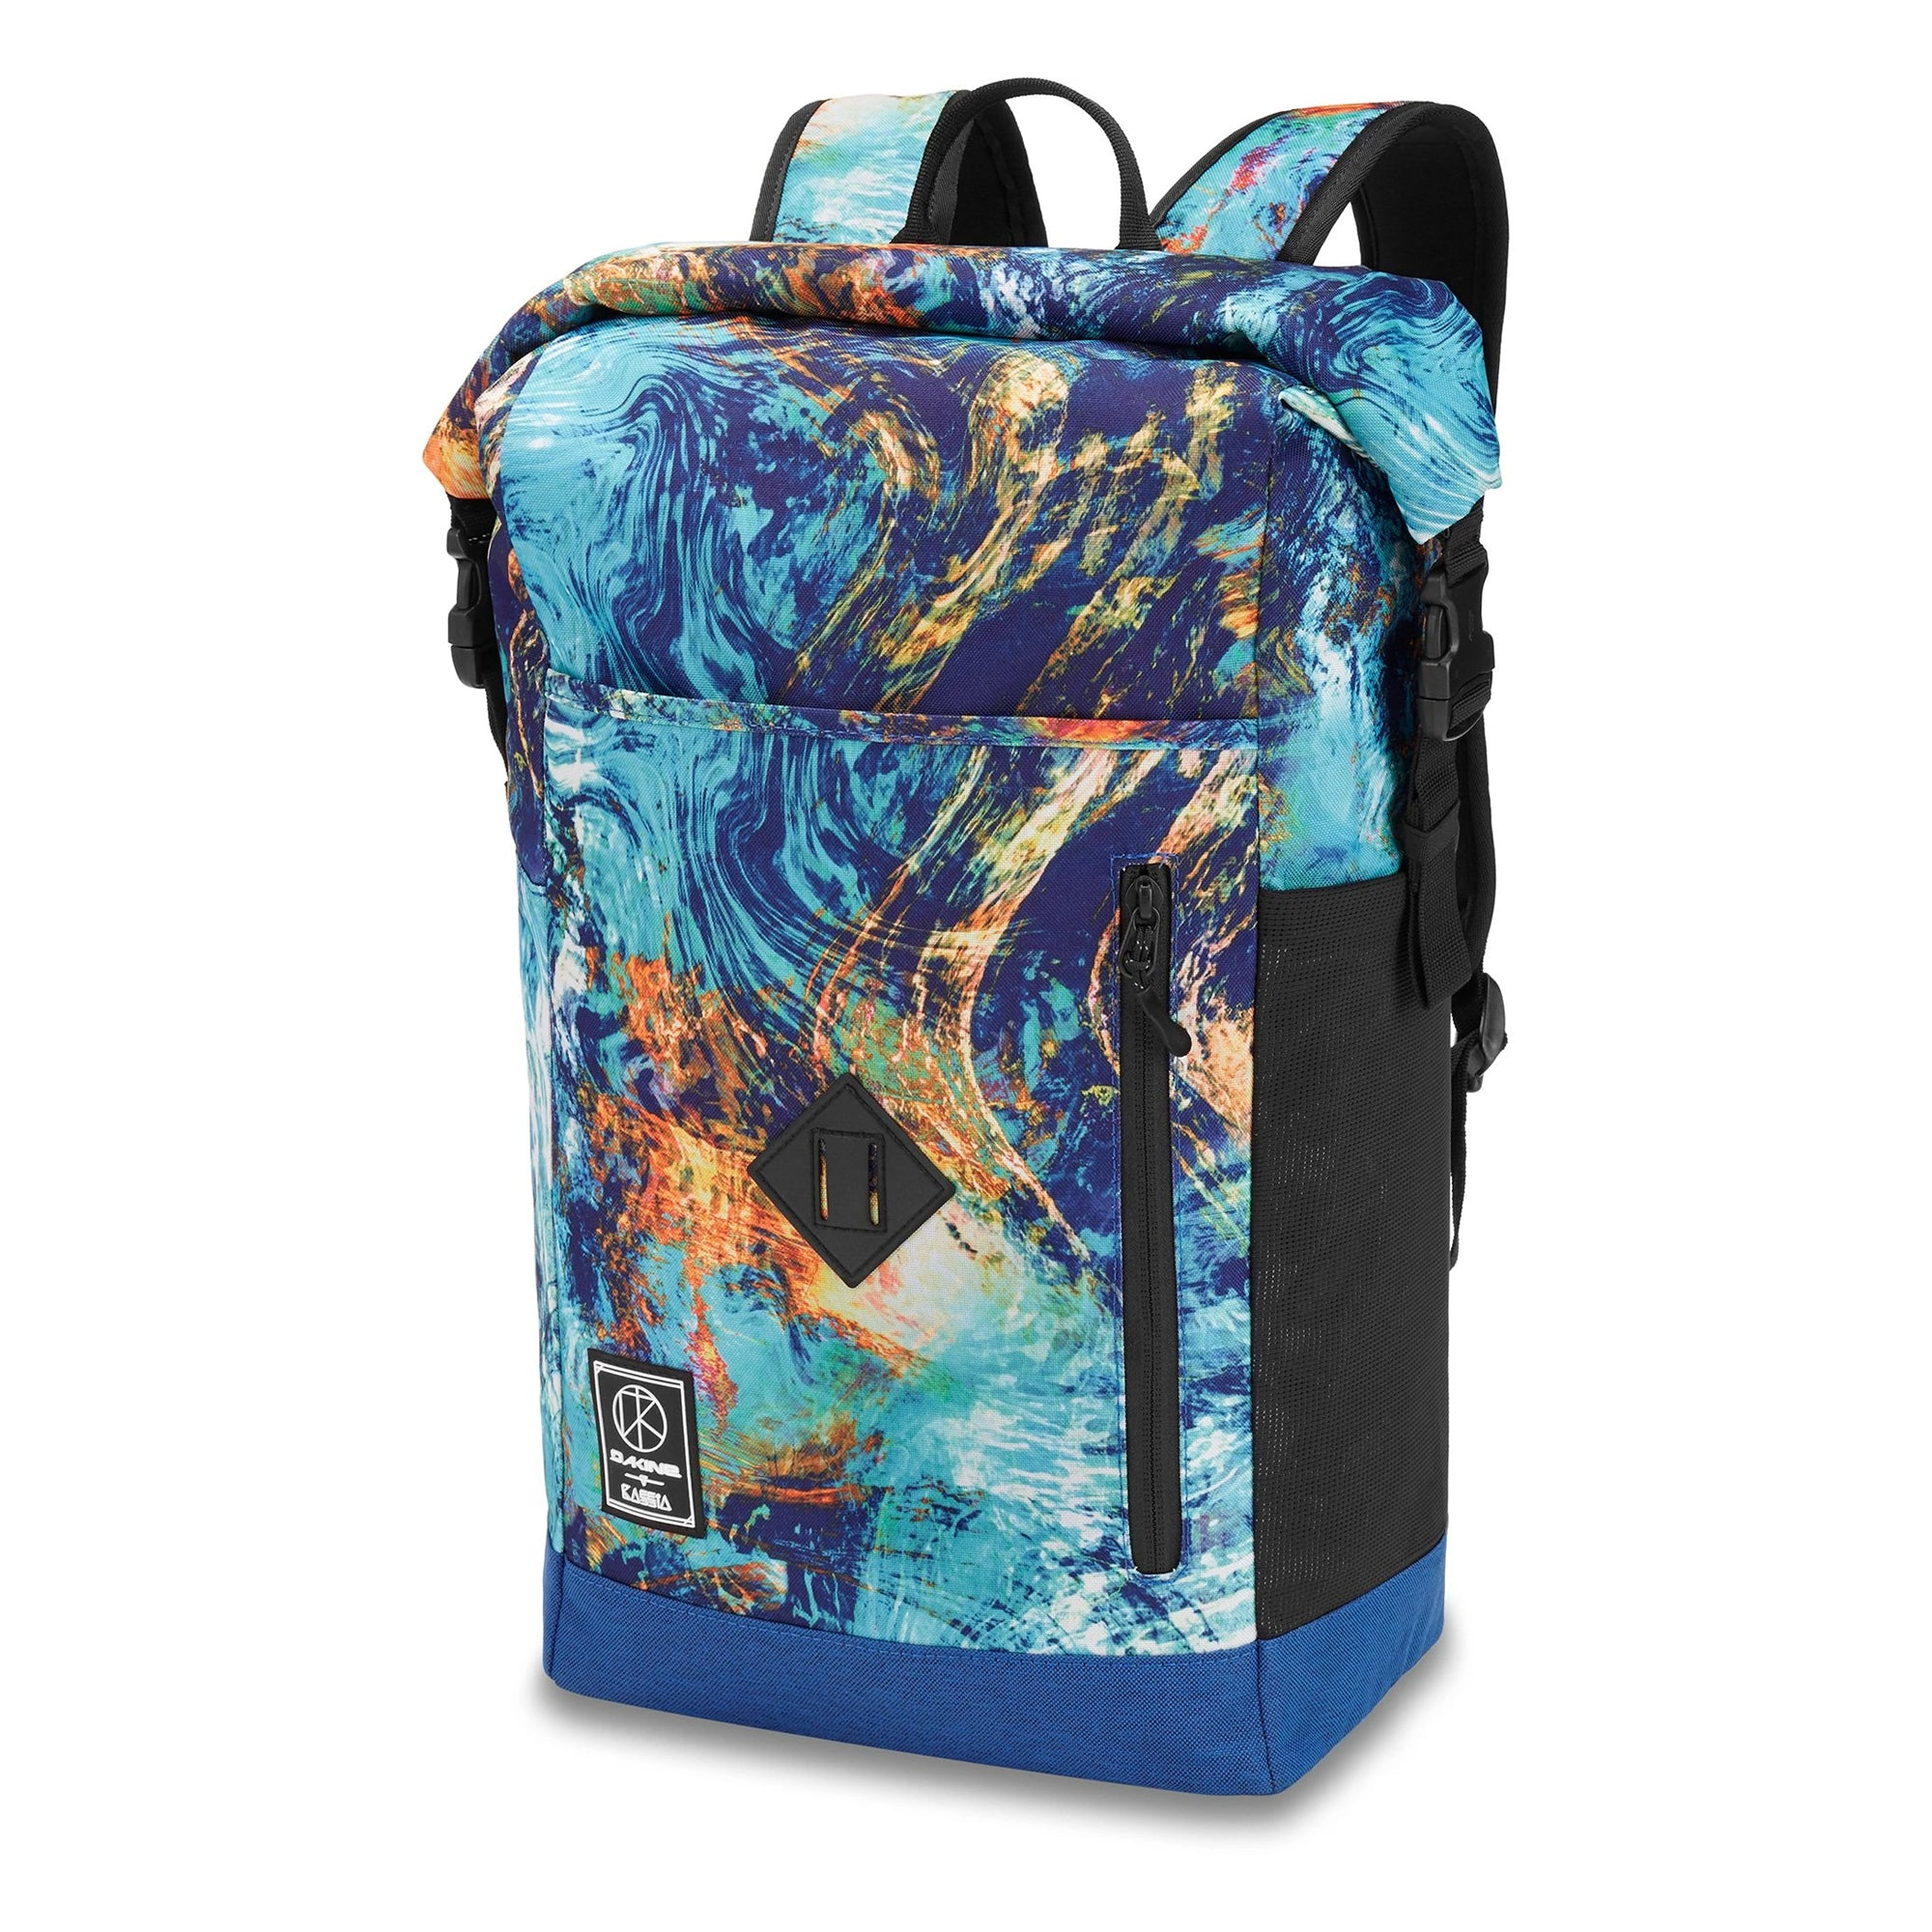 Dakine Mission Surf Roll Top 28L Backpack - Kassia Elemental